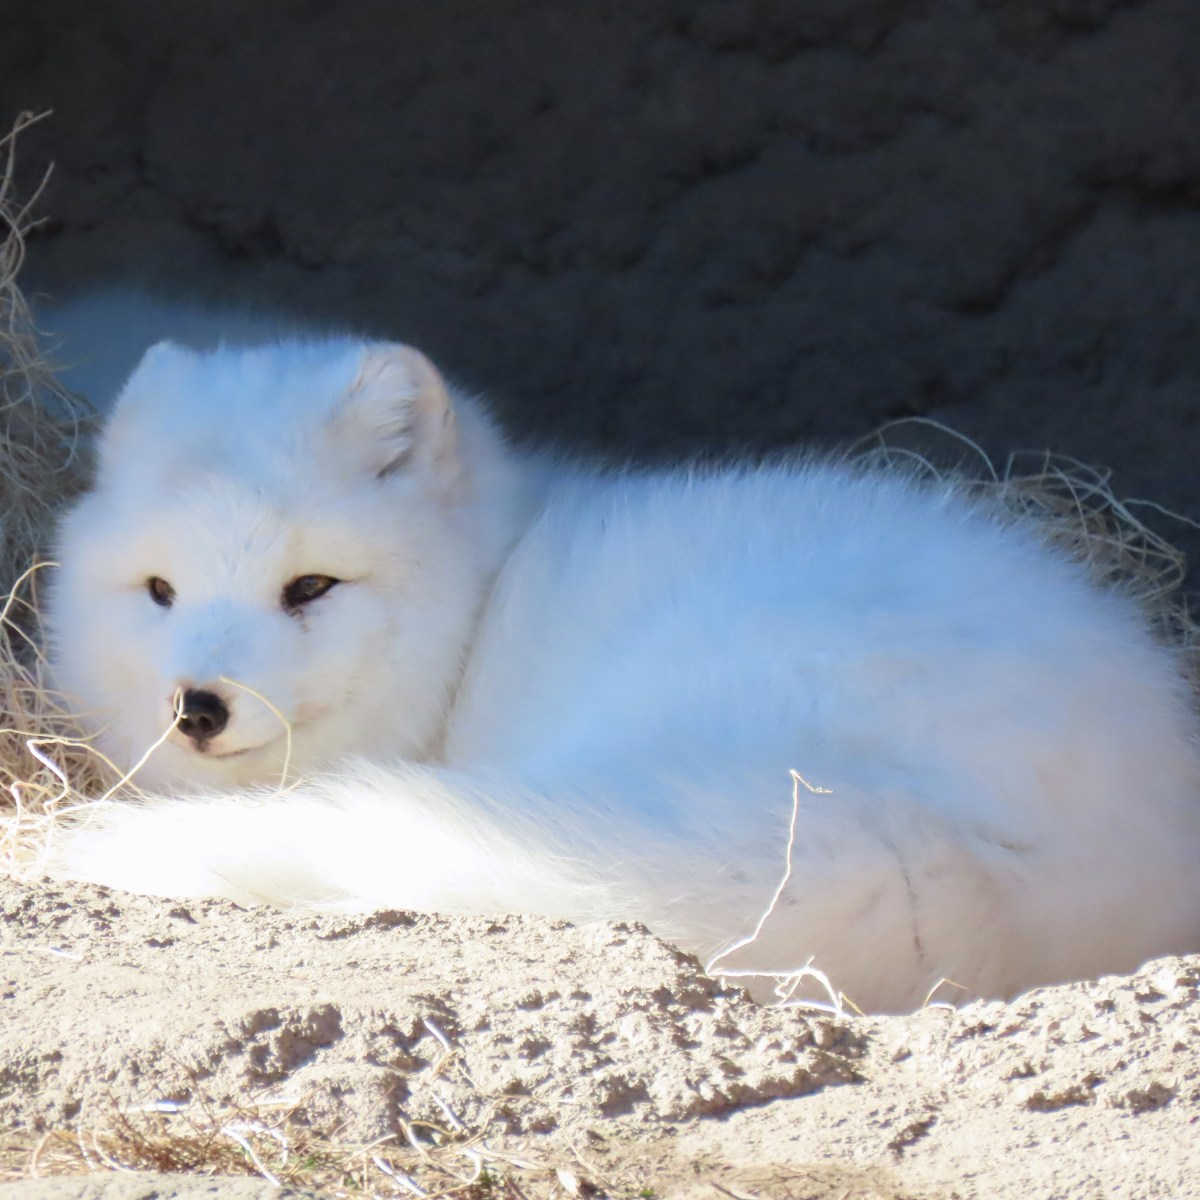 An arctic fox rests in a partially sunny spot